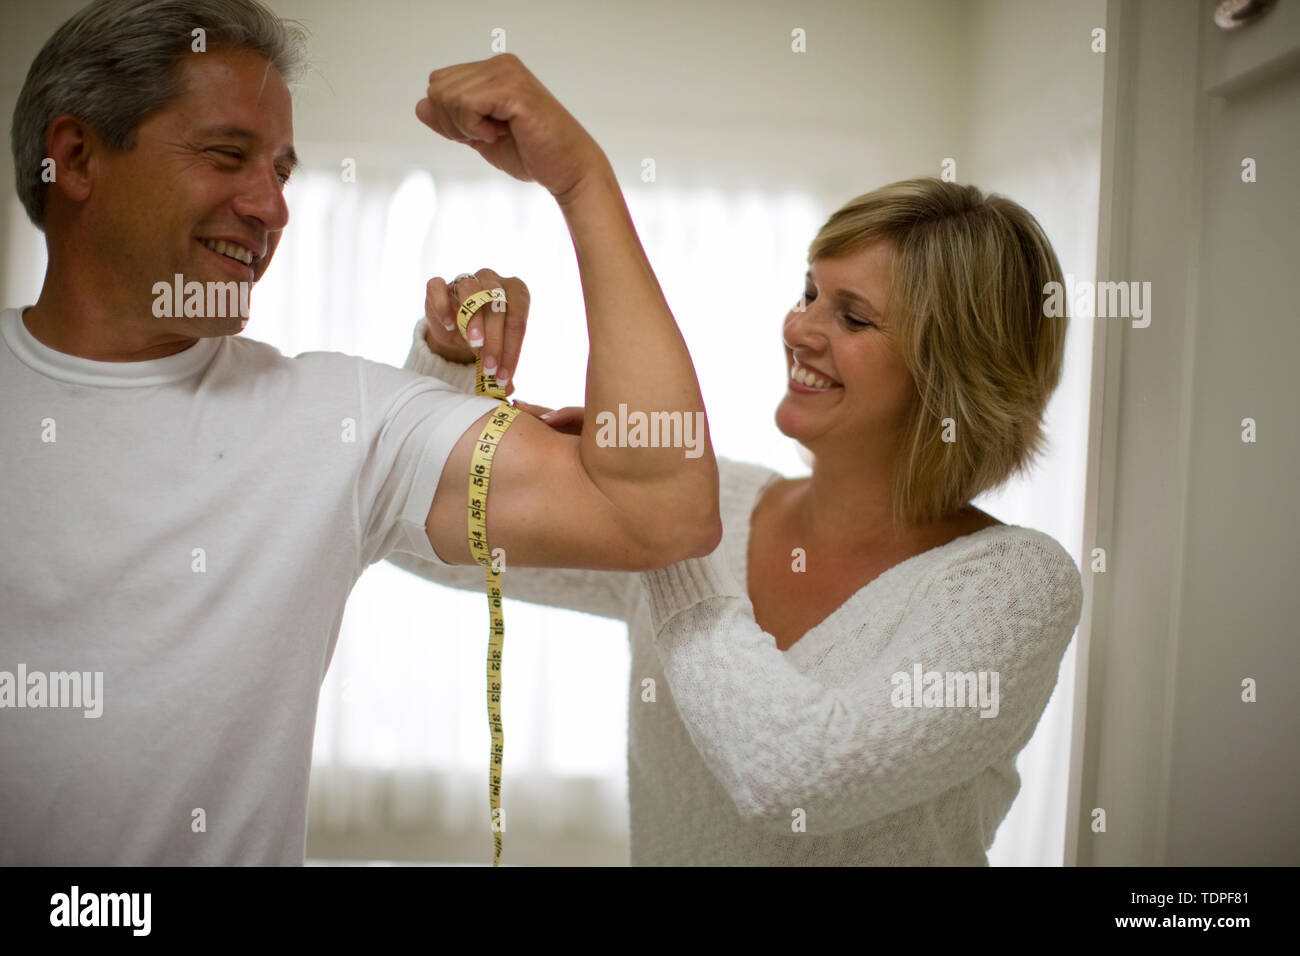 Smiling mid-adult woman measuring her husband's tricep muscle with a tape measure inside their home. - Stock Image